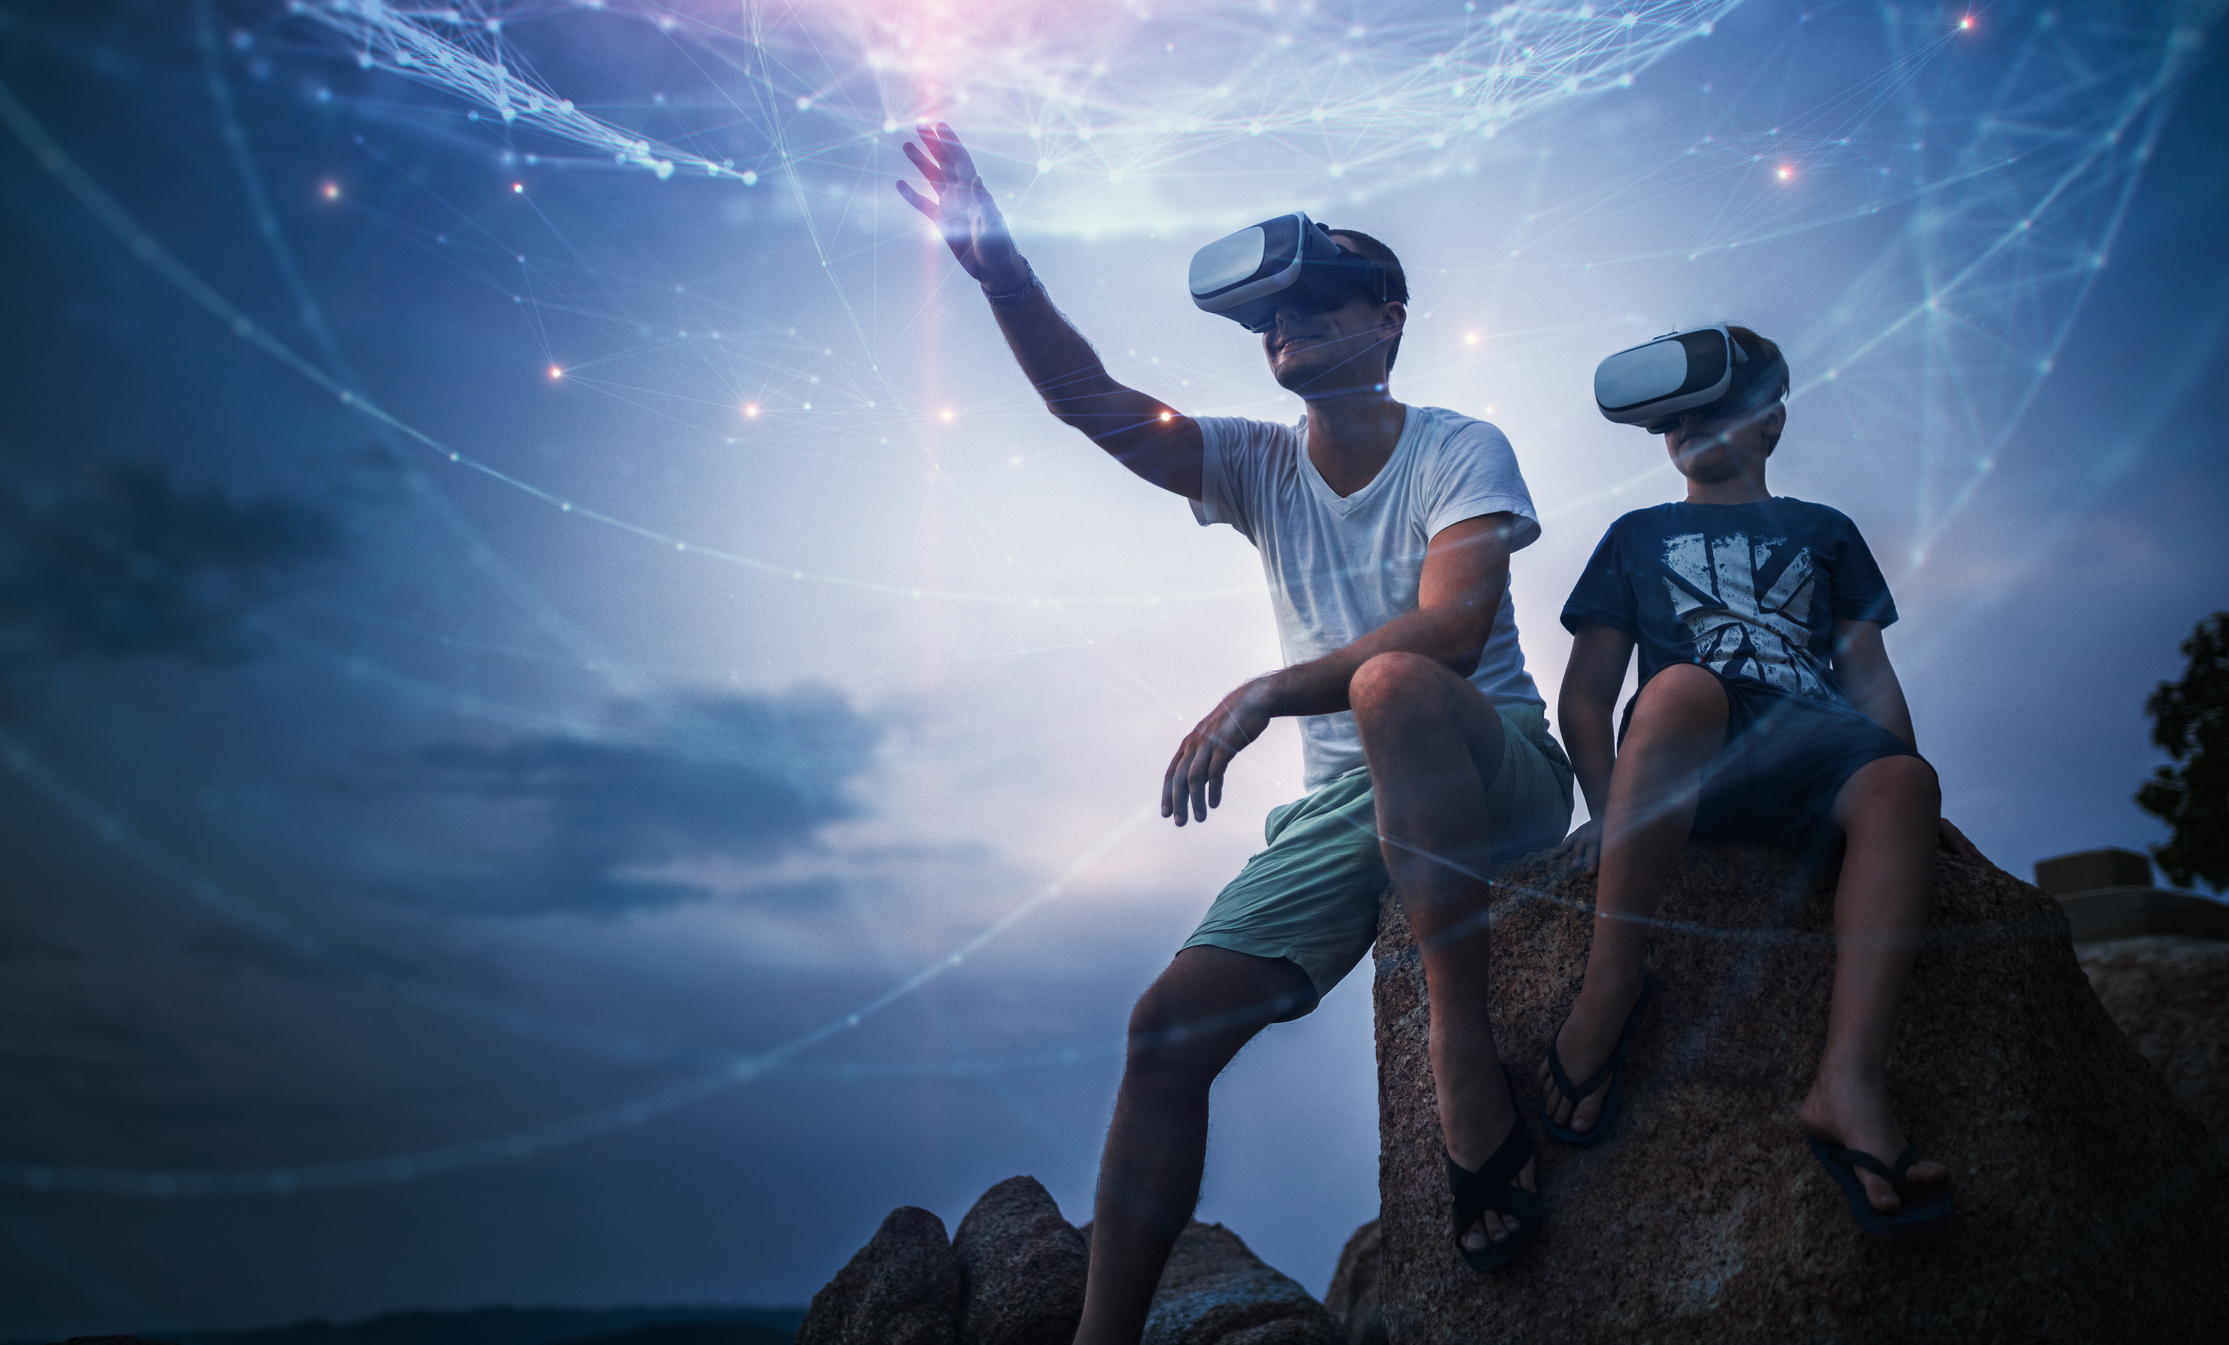 Amazing futuristic technology trends to look out for in 2018